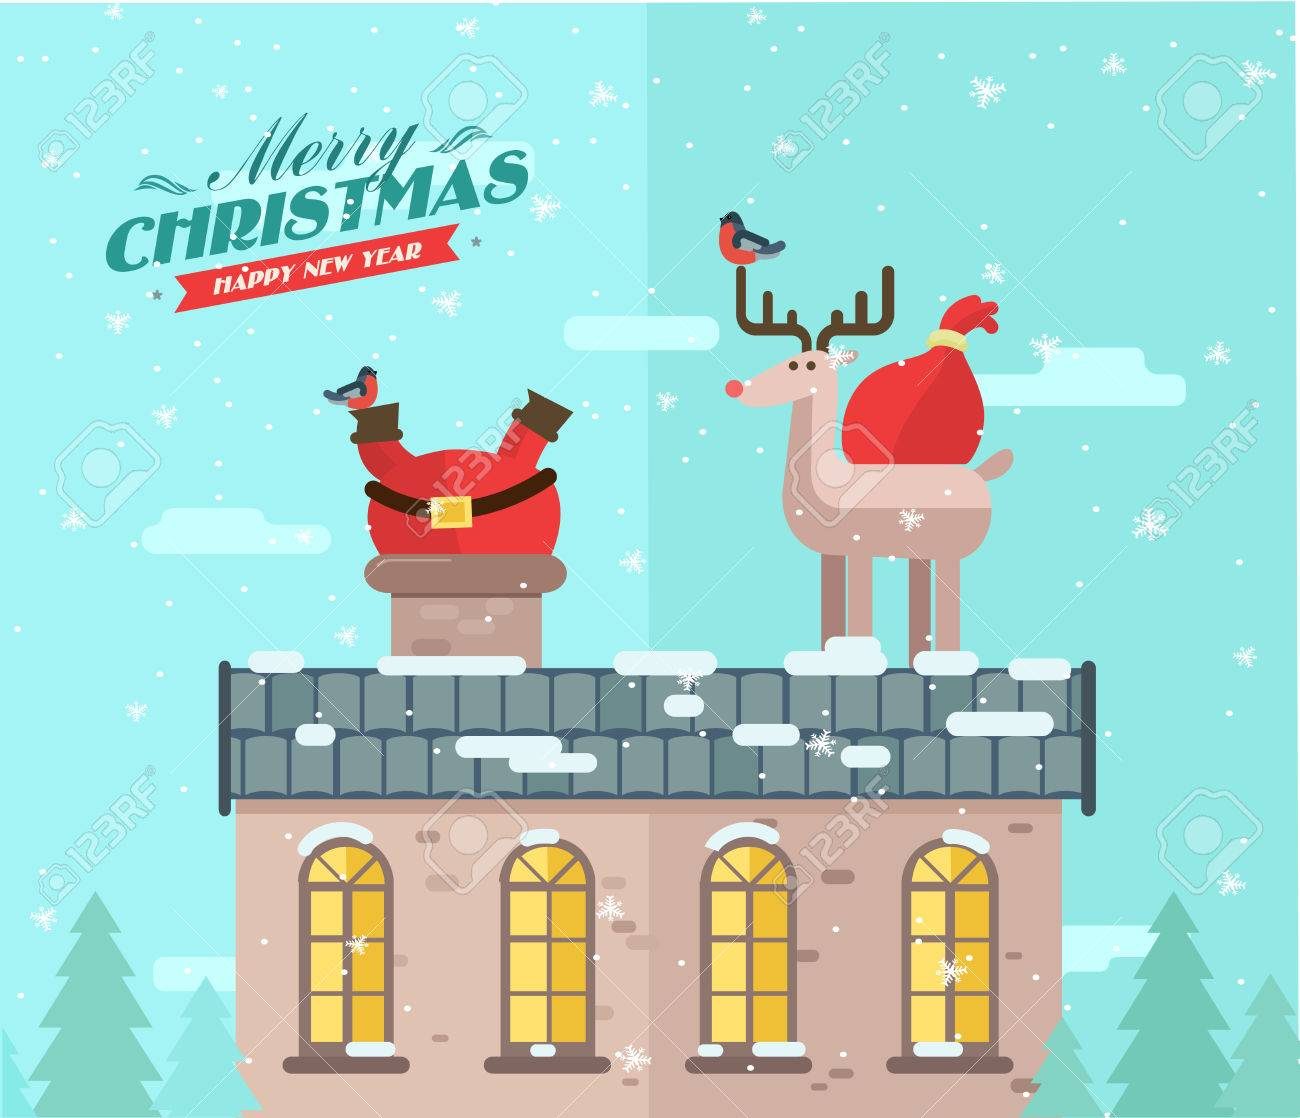 Merry christmas. vector winter background. Santa on the roof - 46453279